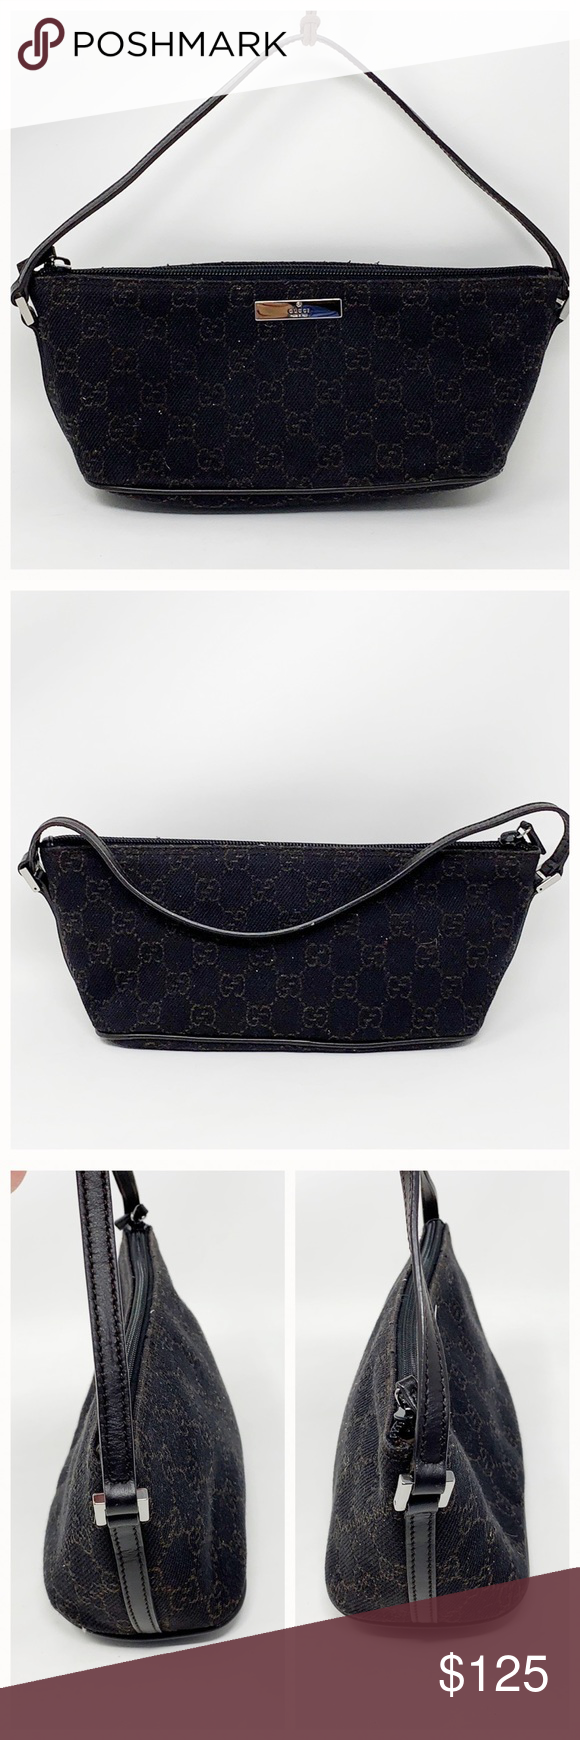 041f81f21 Authentic Gucci Pochette Bag 100% Authenticity Guaranteed Made in Italy  Serial # 071982123 The outer